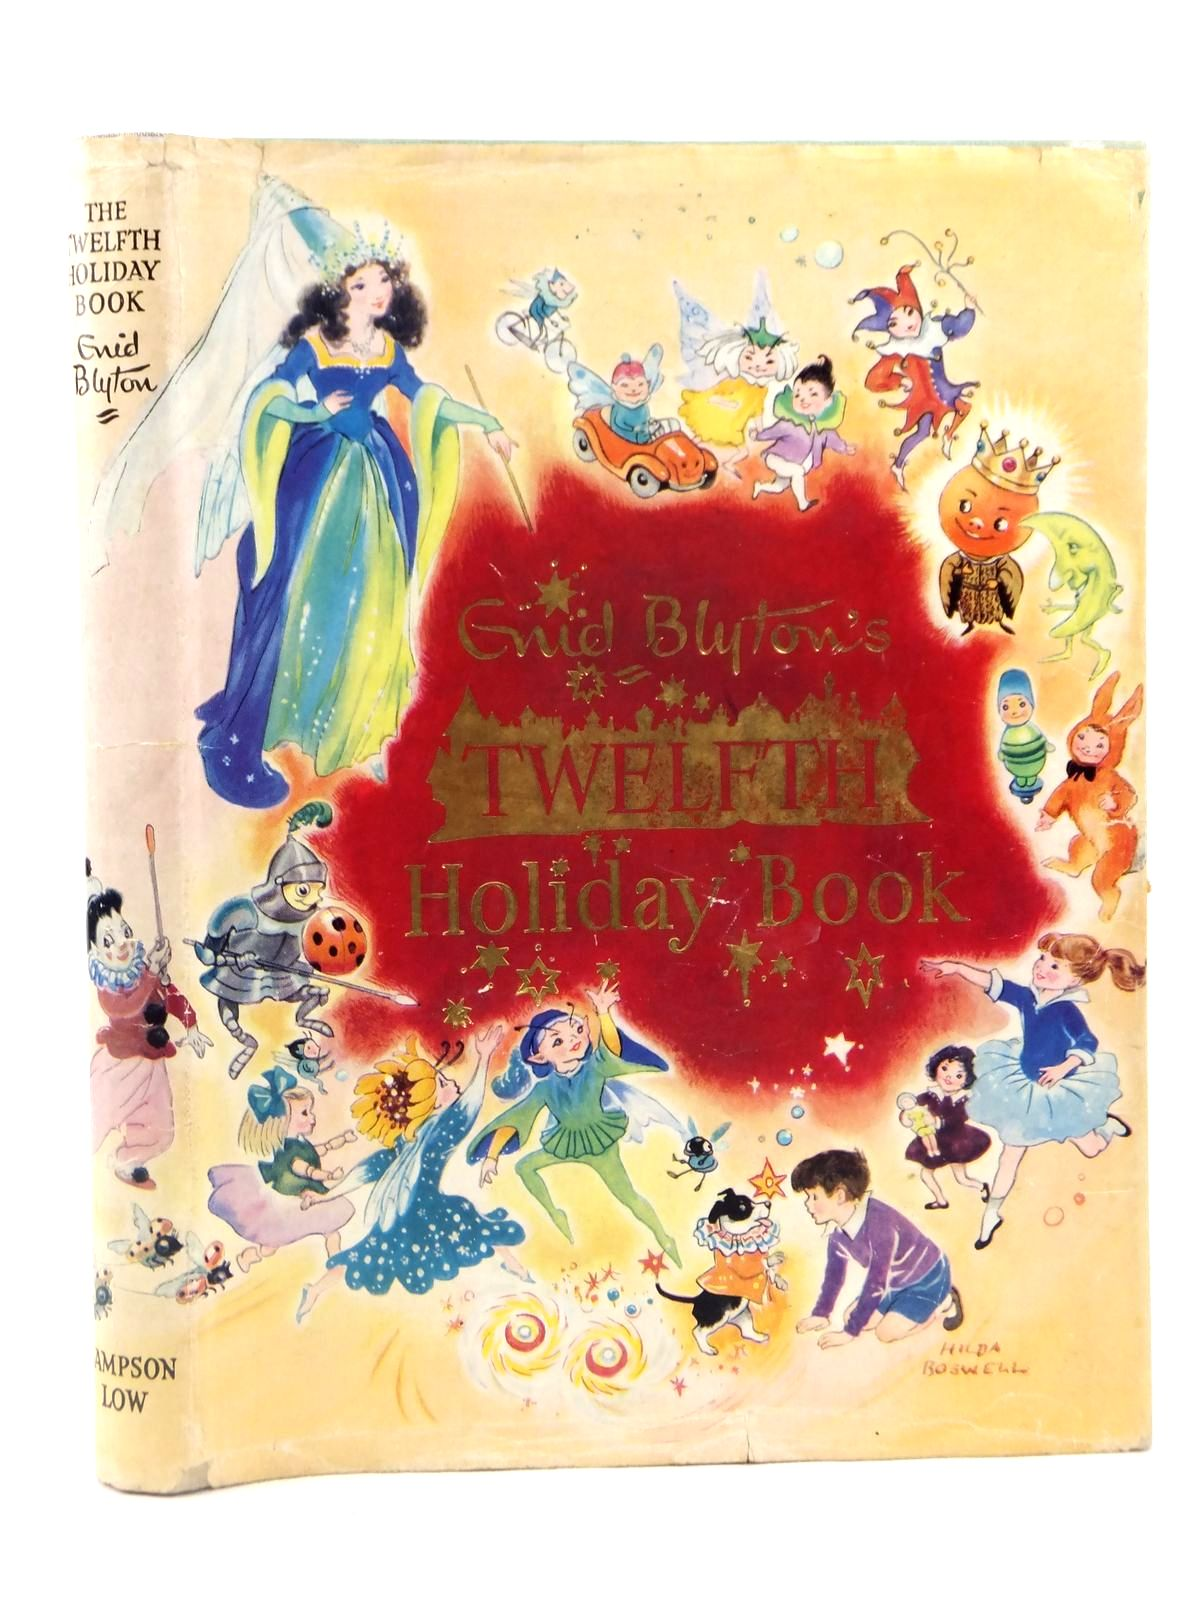 Cover of THE TWELFTH HOLIDAY BOOK by Enid Blyton